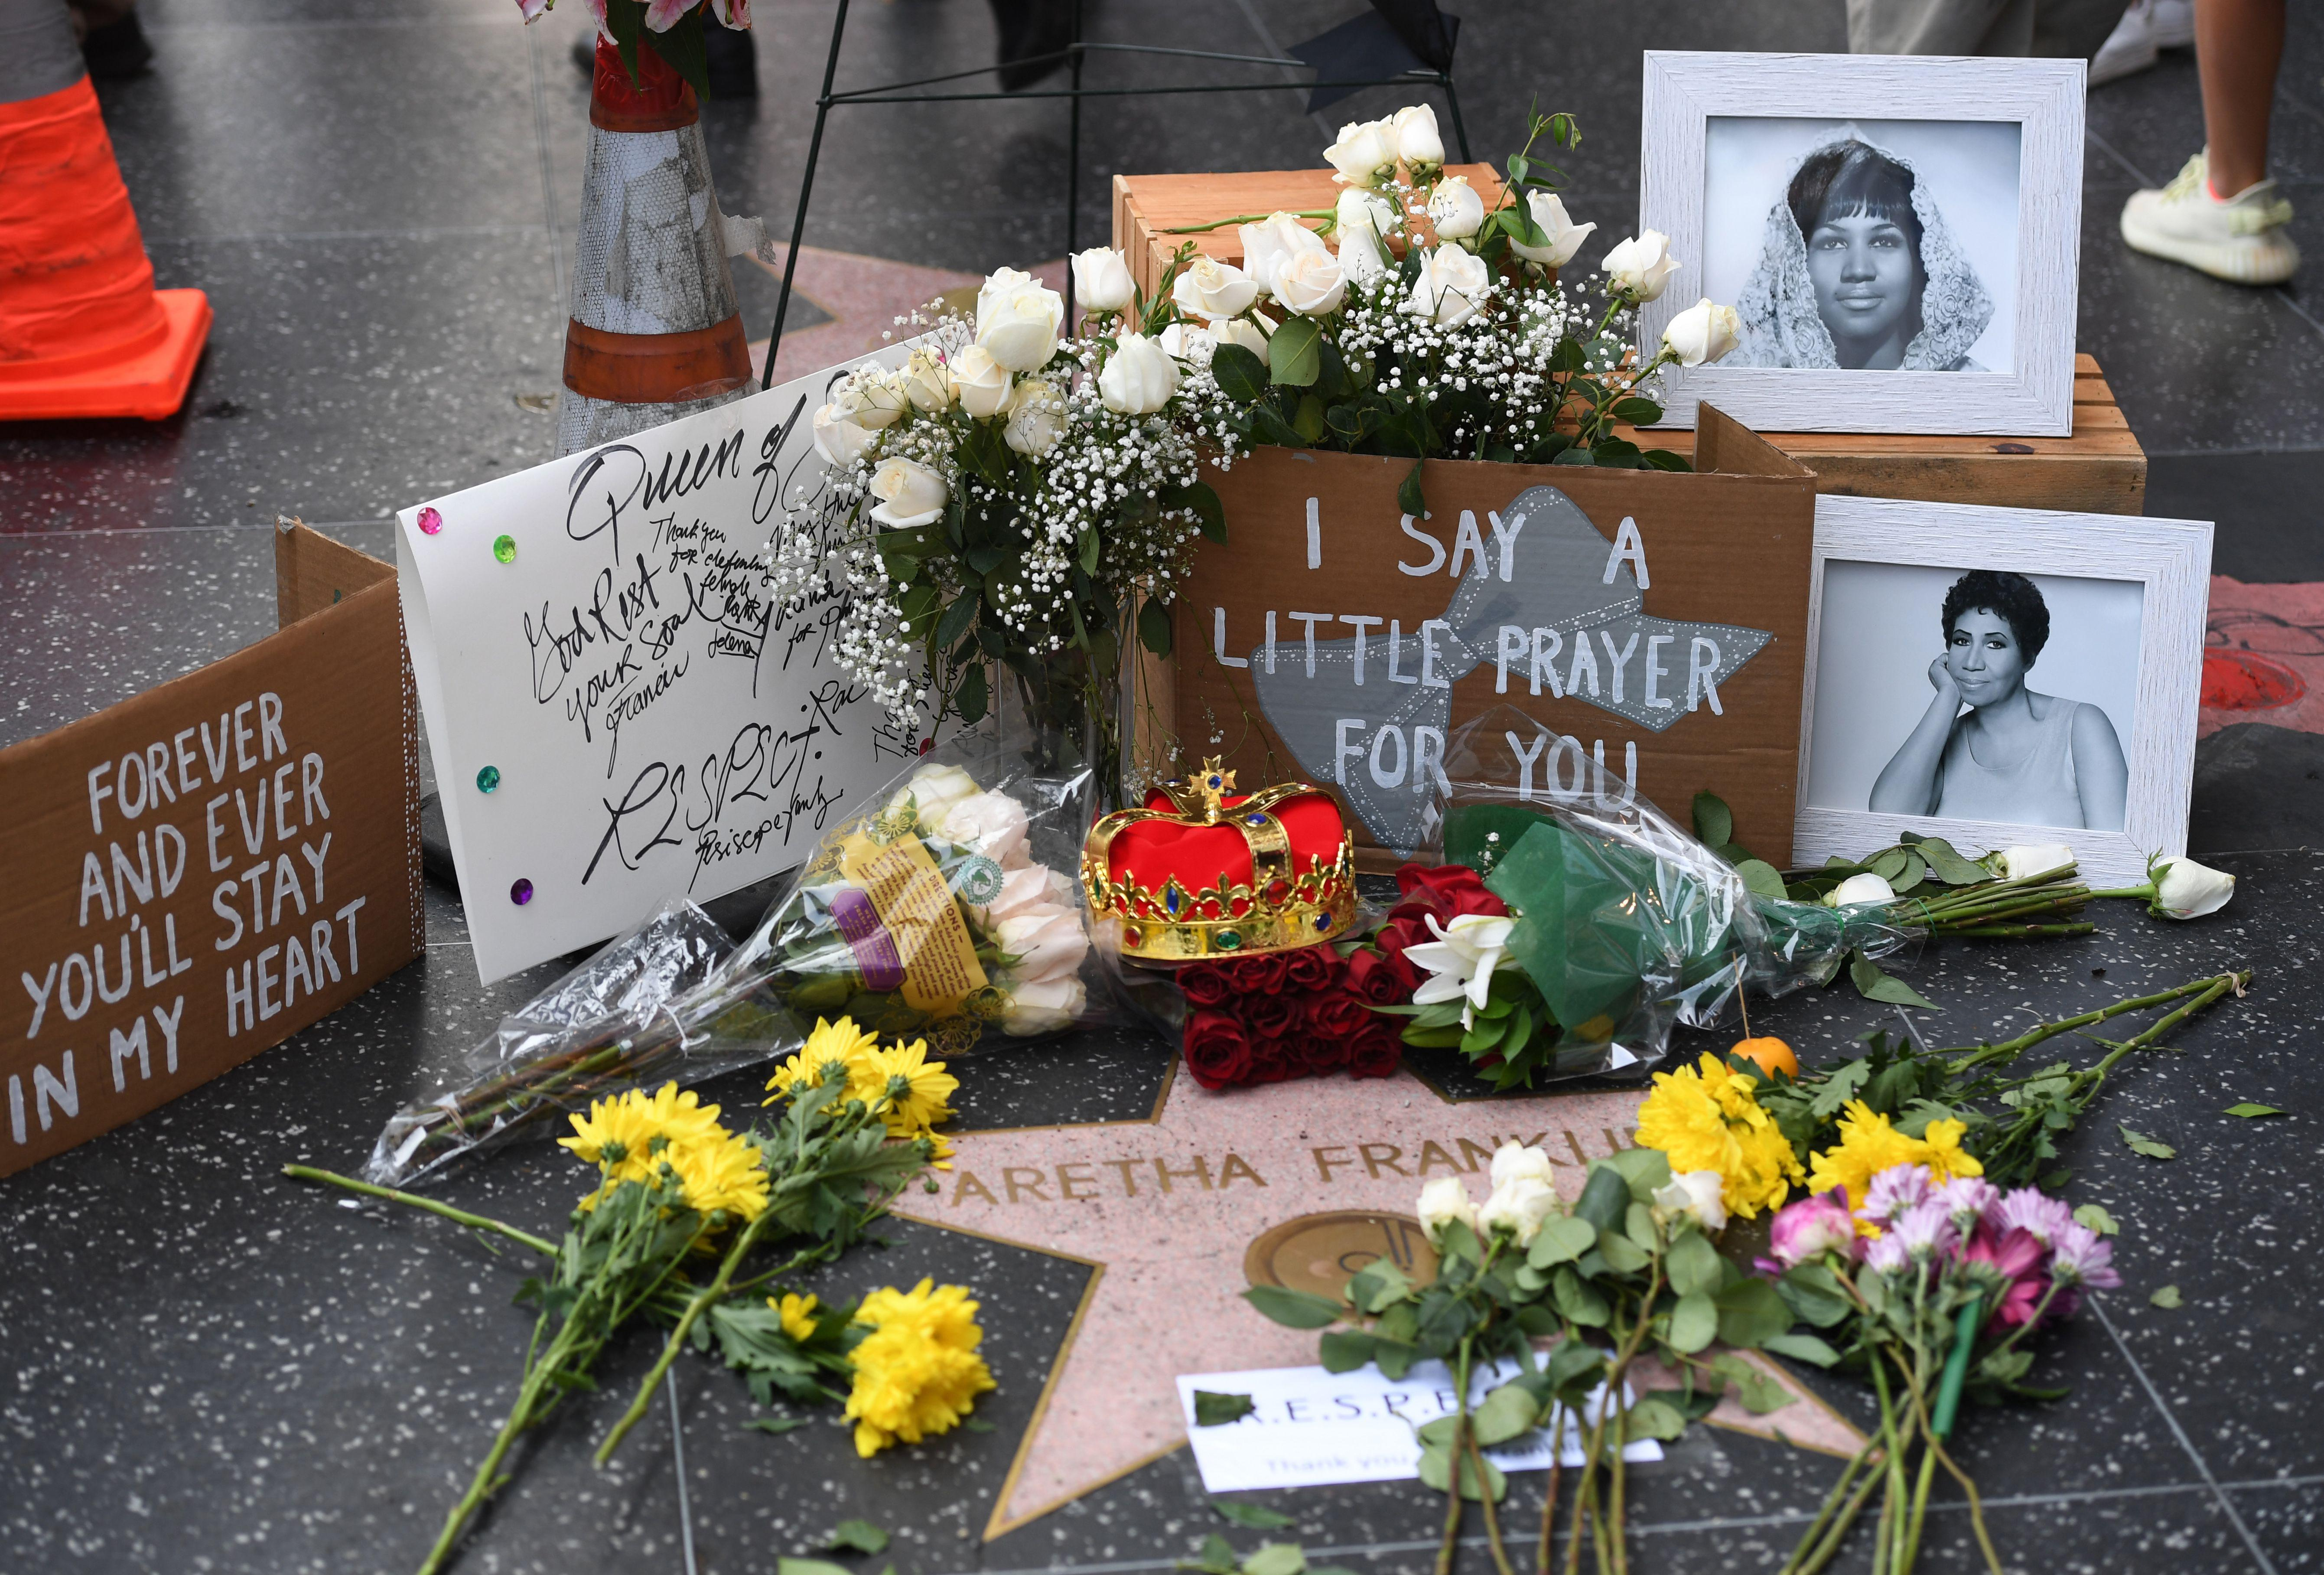 Flowers and tributes are placed on the Star for Aretha Franklin on the Hollywood Walk of Fame in Hollywood, California, August 16, 2018, after the music icon, legendary singer and 'Queen of Soul' loved by millions whose history-making career spanned six decades, died, her longtime publicist announced. - Franklin, who influenced generations of female singers with unforgettable hits including 'Respect' (1967), 'Natural Woman' (1968) and 'I Say a Little Prayer' (1968), passed away August 16, 2018 at home age 76 in Detroit from advanced pancreatic cancer. (Photo by Mark RALSTON / AFP)        (Photo credit should read MARK RALSTON/AFP/Getty Images)